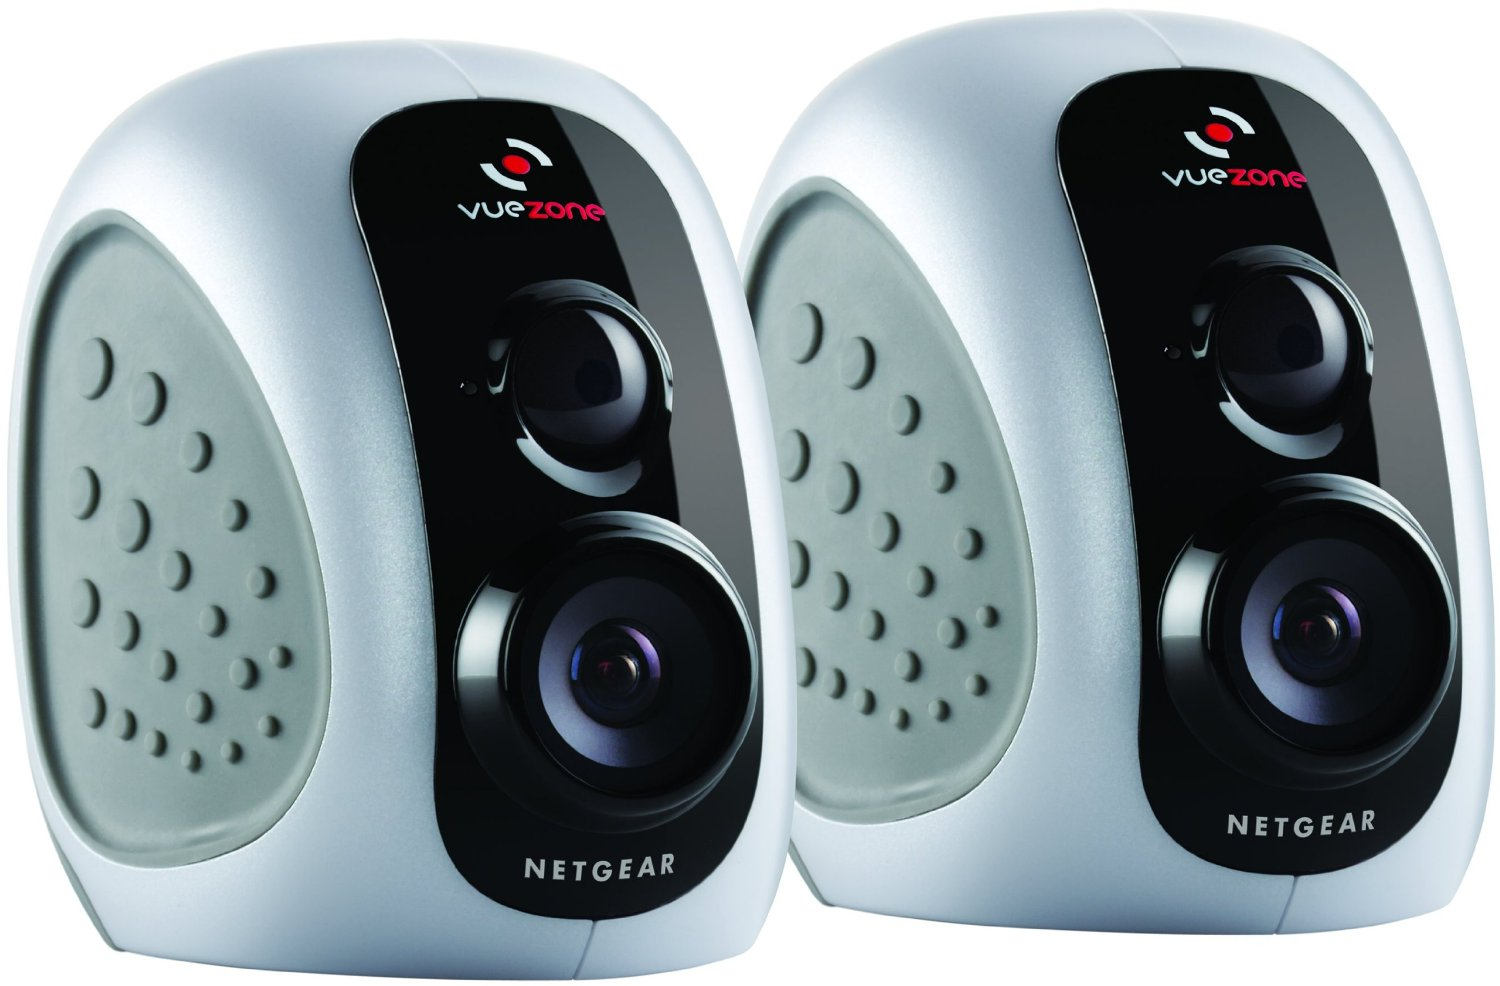 Netgear Wireless Security Systems